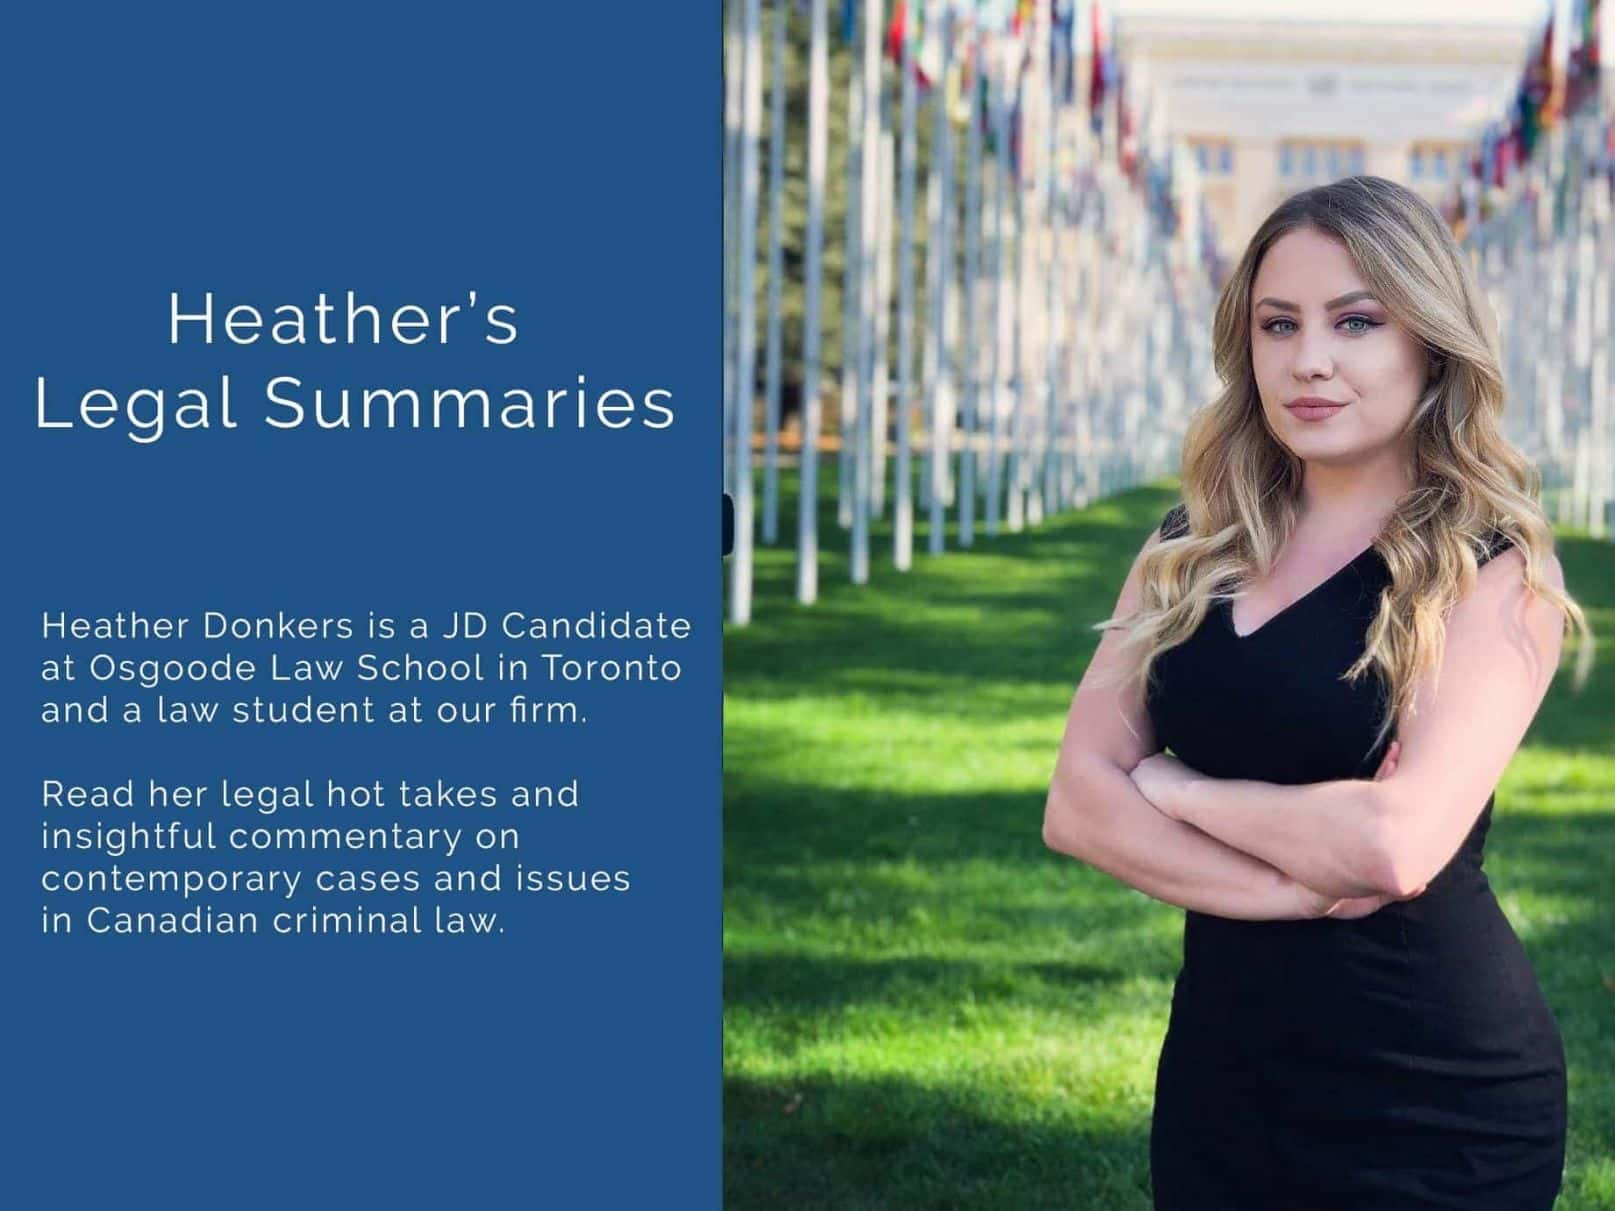 Heather's legal summaries cumulative hearsay rule